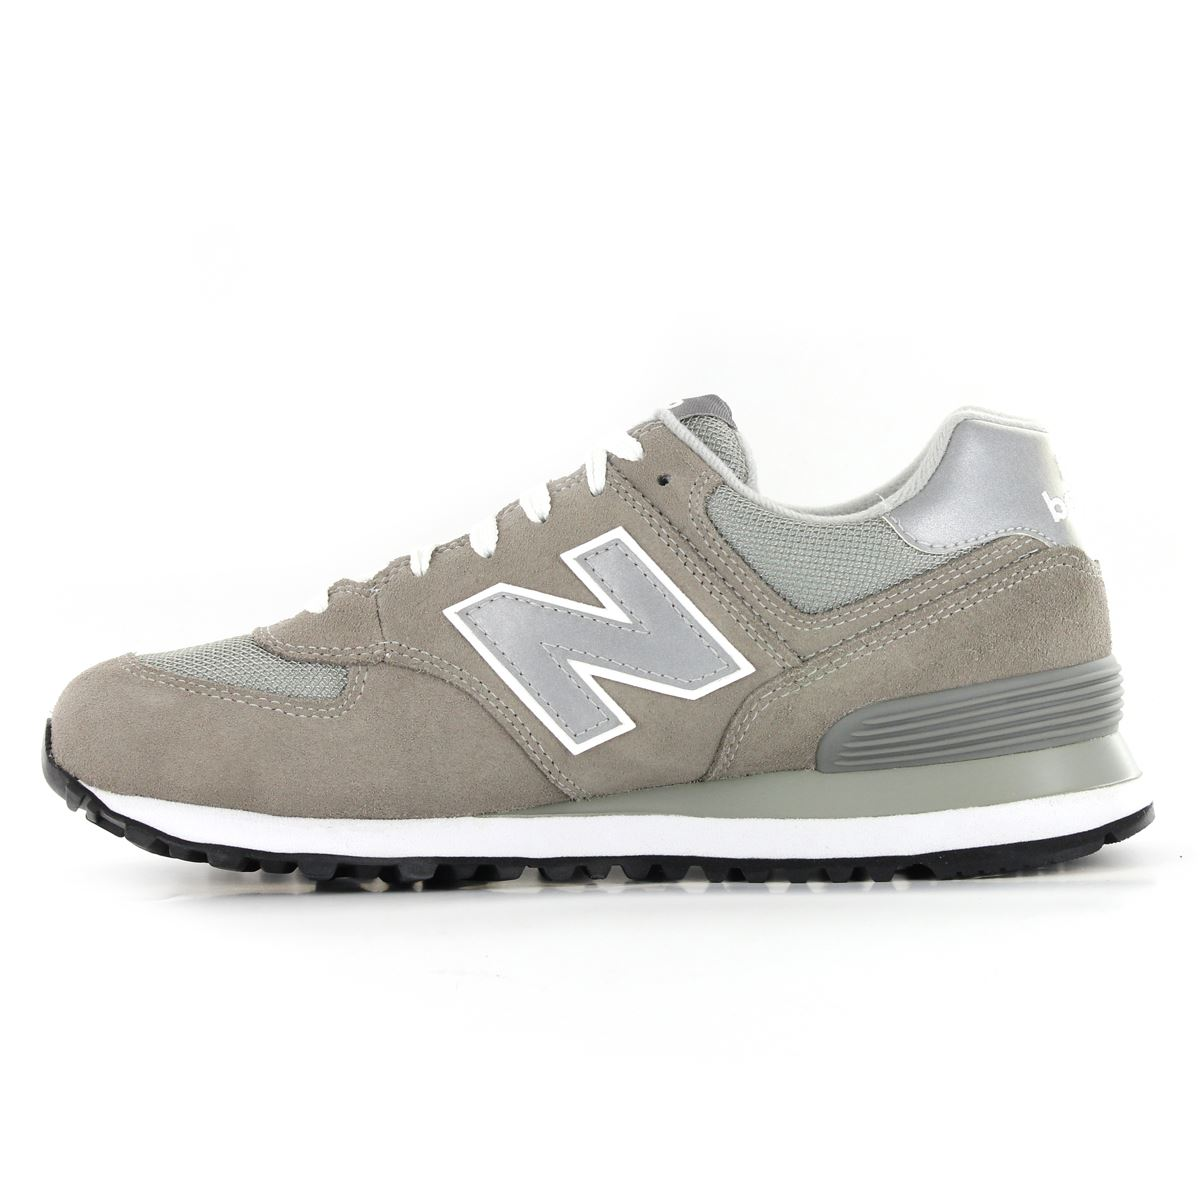 new balance classic traditionnels m574 leather mens trainers ebay. Black Bedroom Furniture Sets. Home Design Ideas